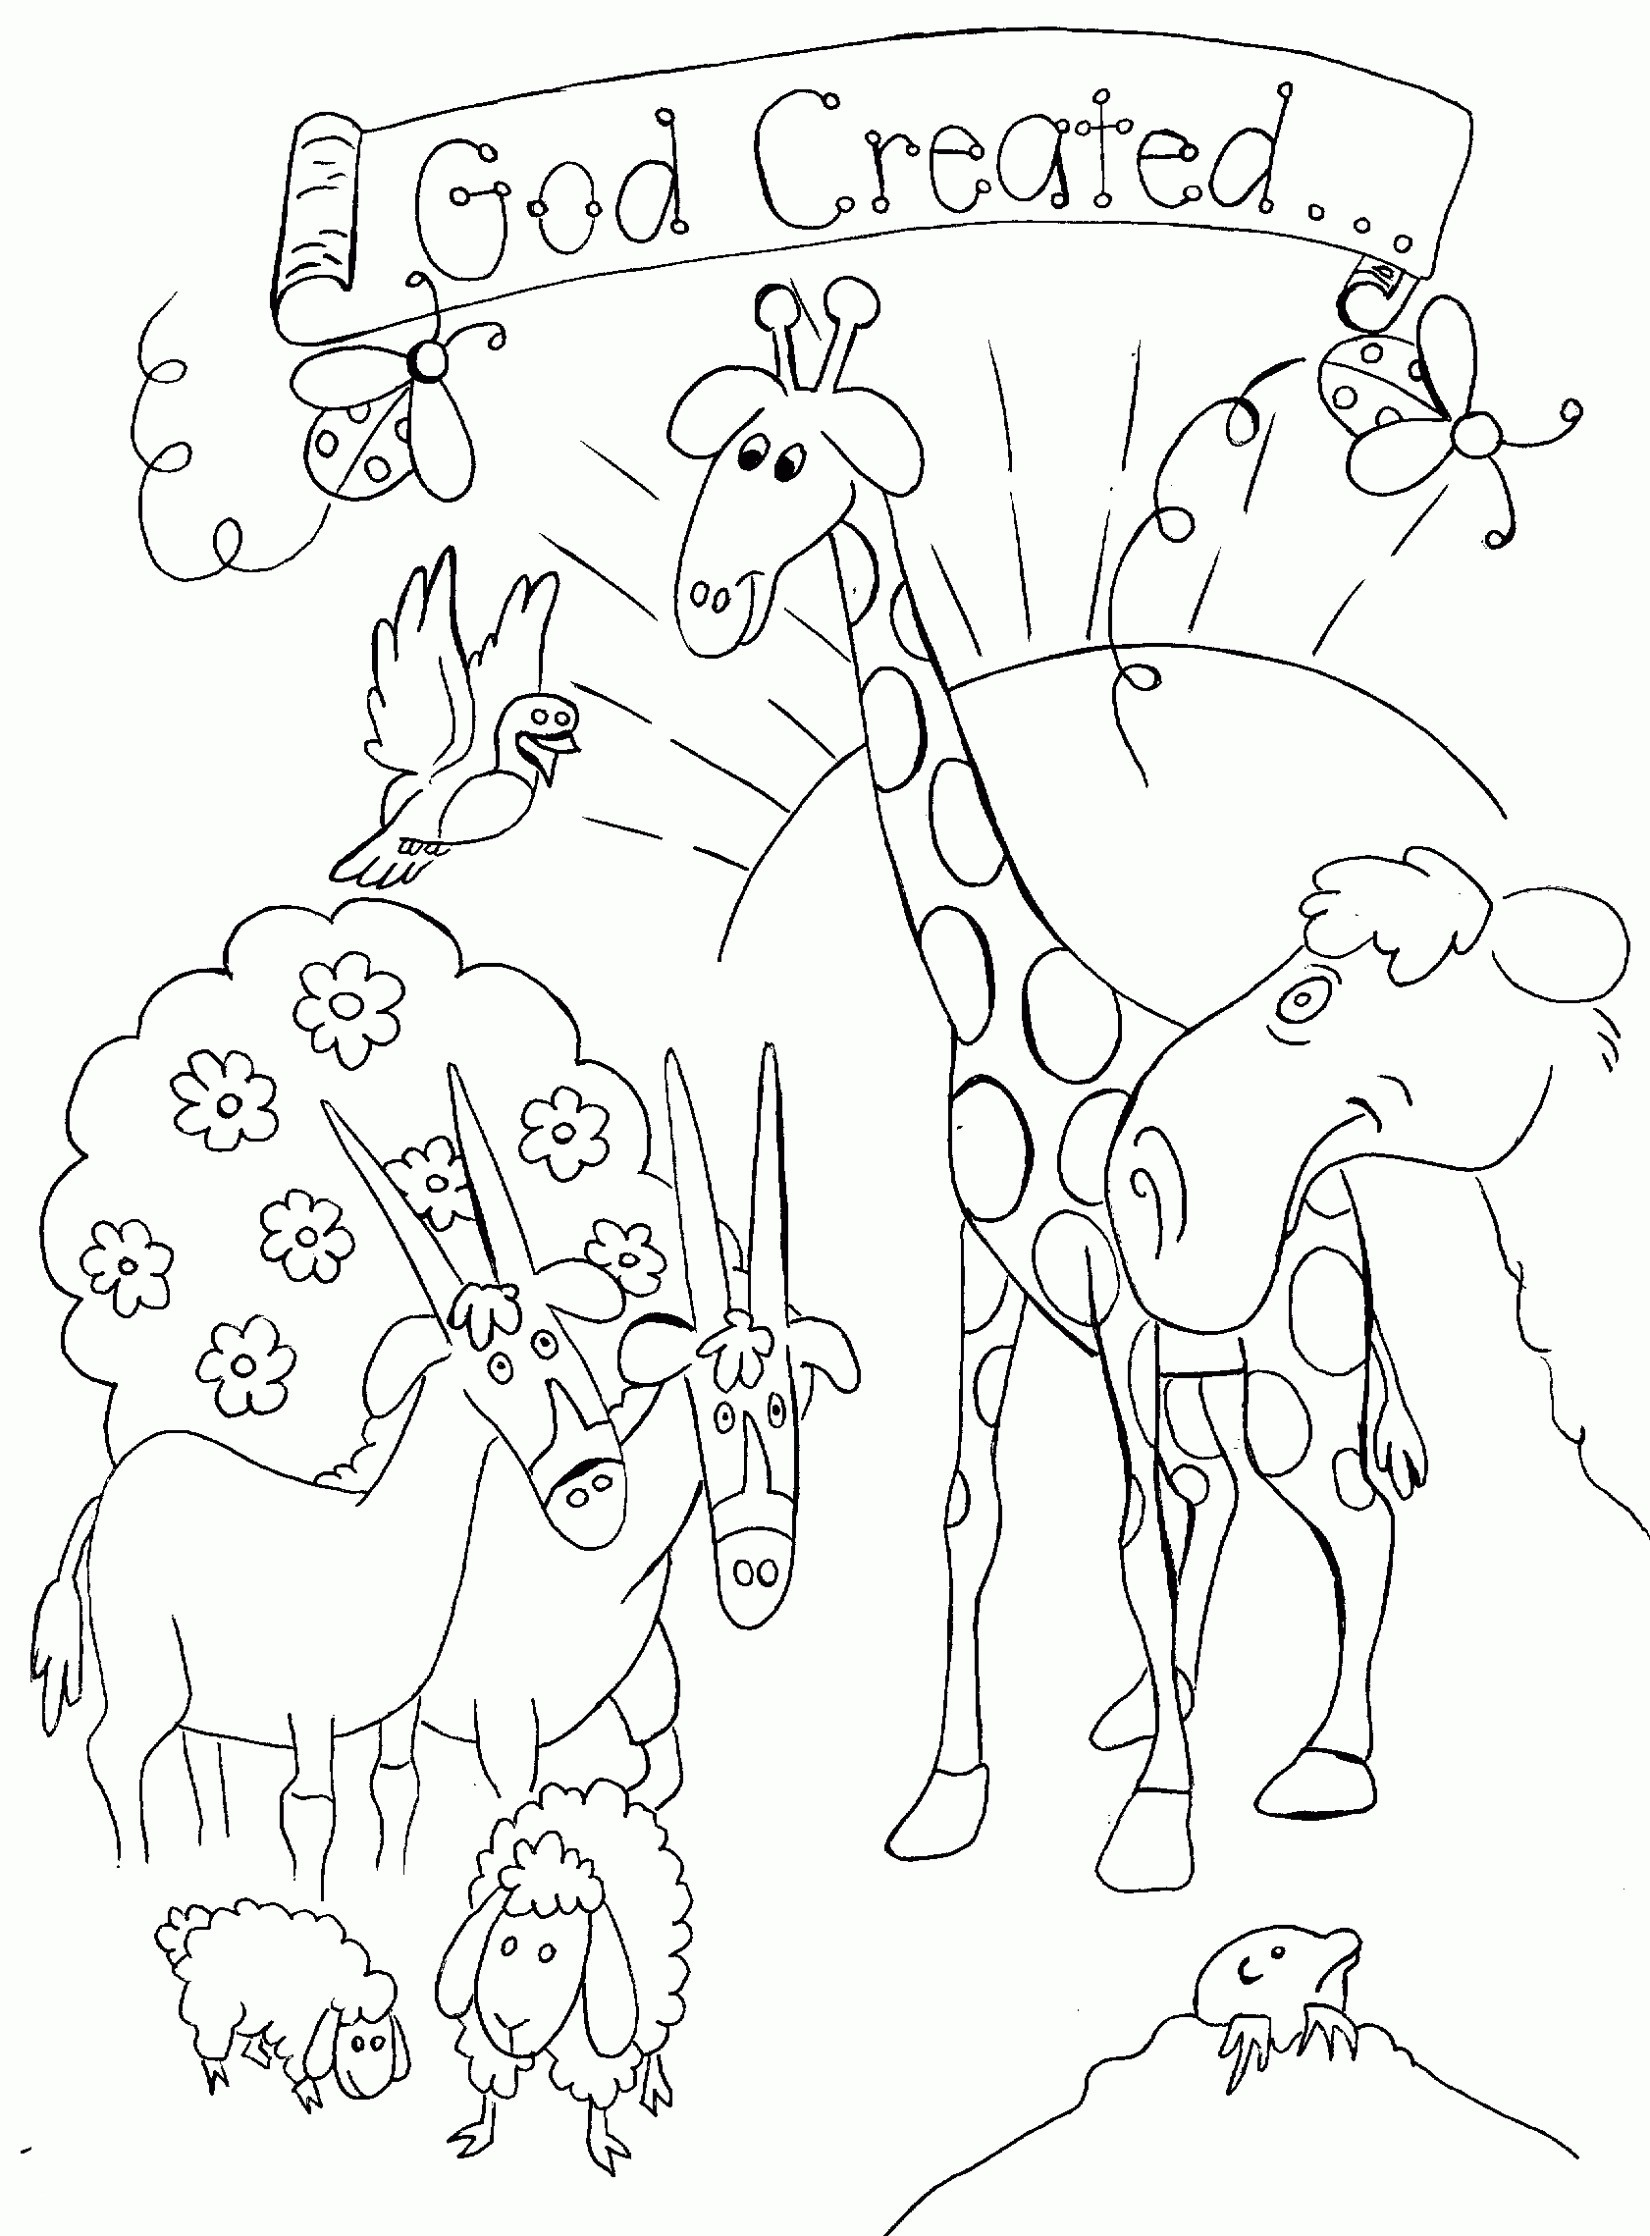 preschool bible story coloring pages Collection-Bible Story Coloring Pages for Preschoolers Bible Coloring Pages Kids Valid Christian Coloring Sheets Best Bible 15-a